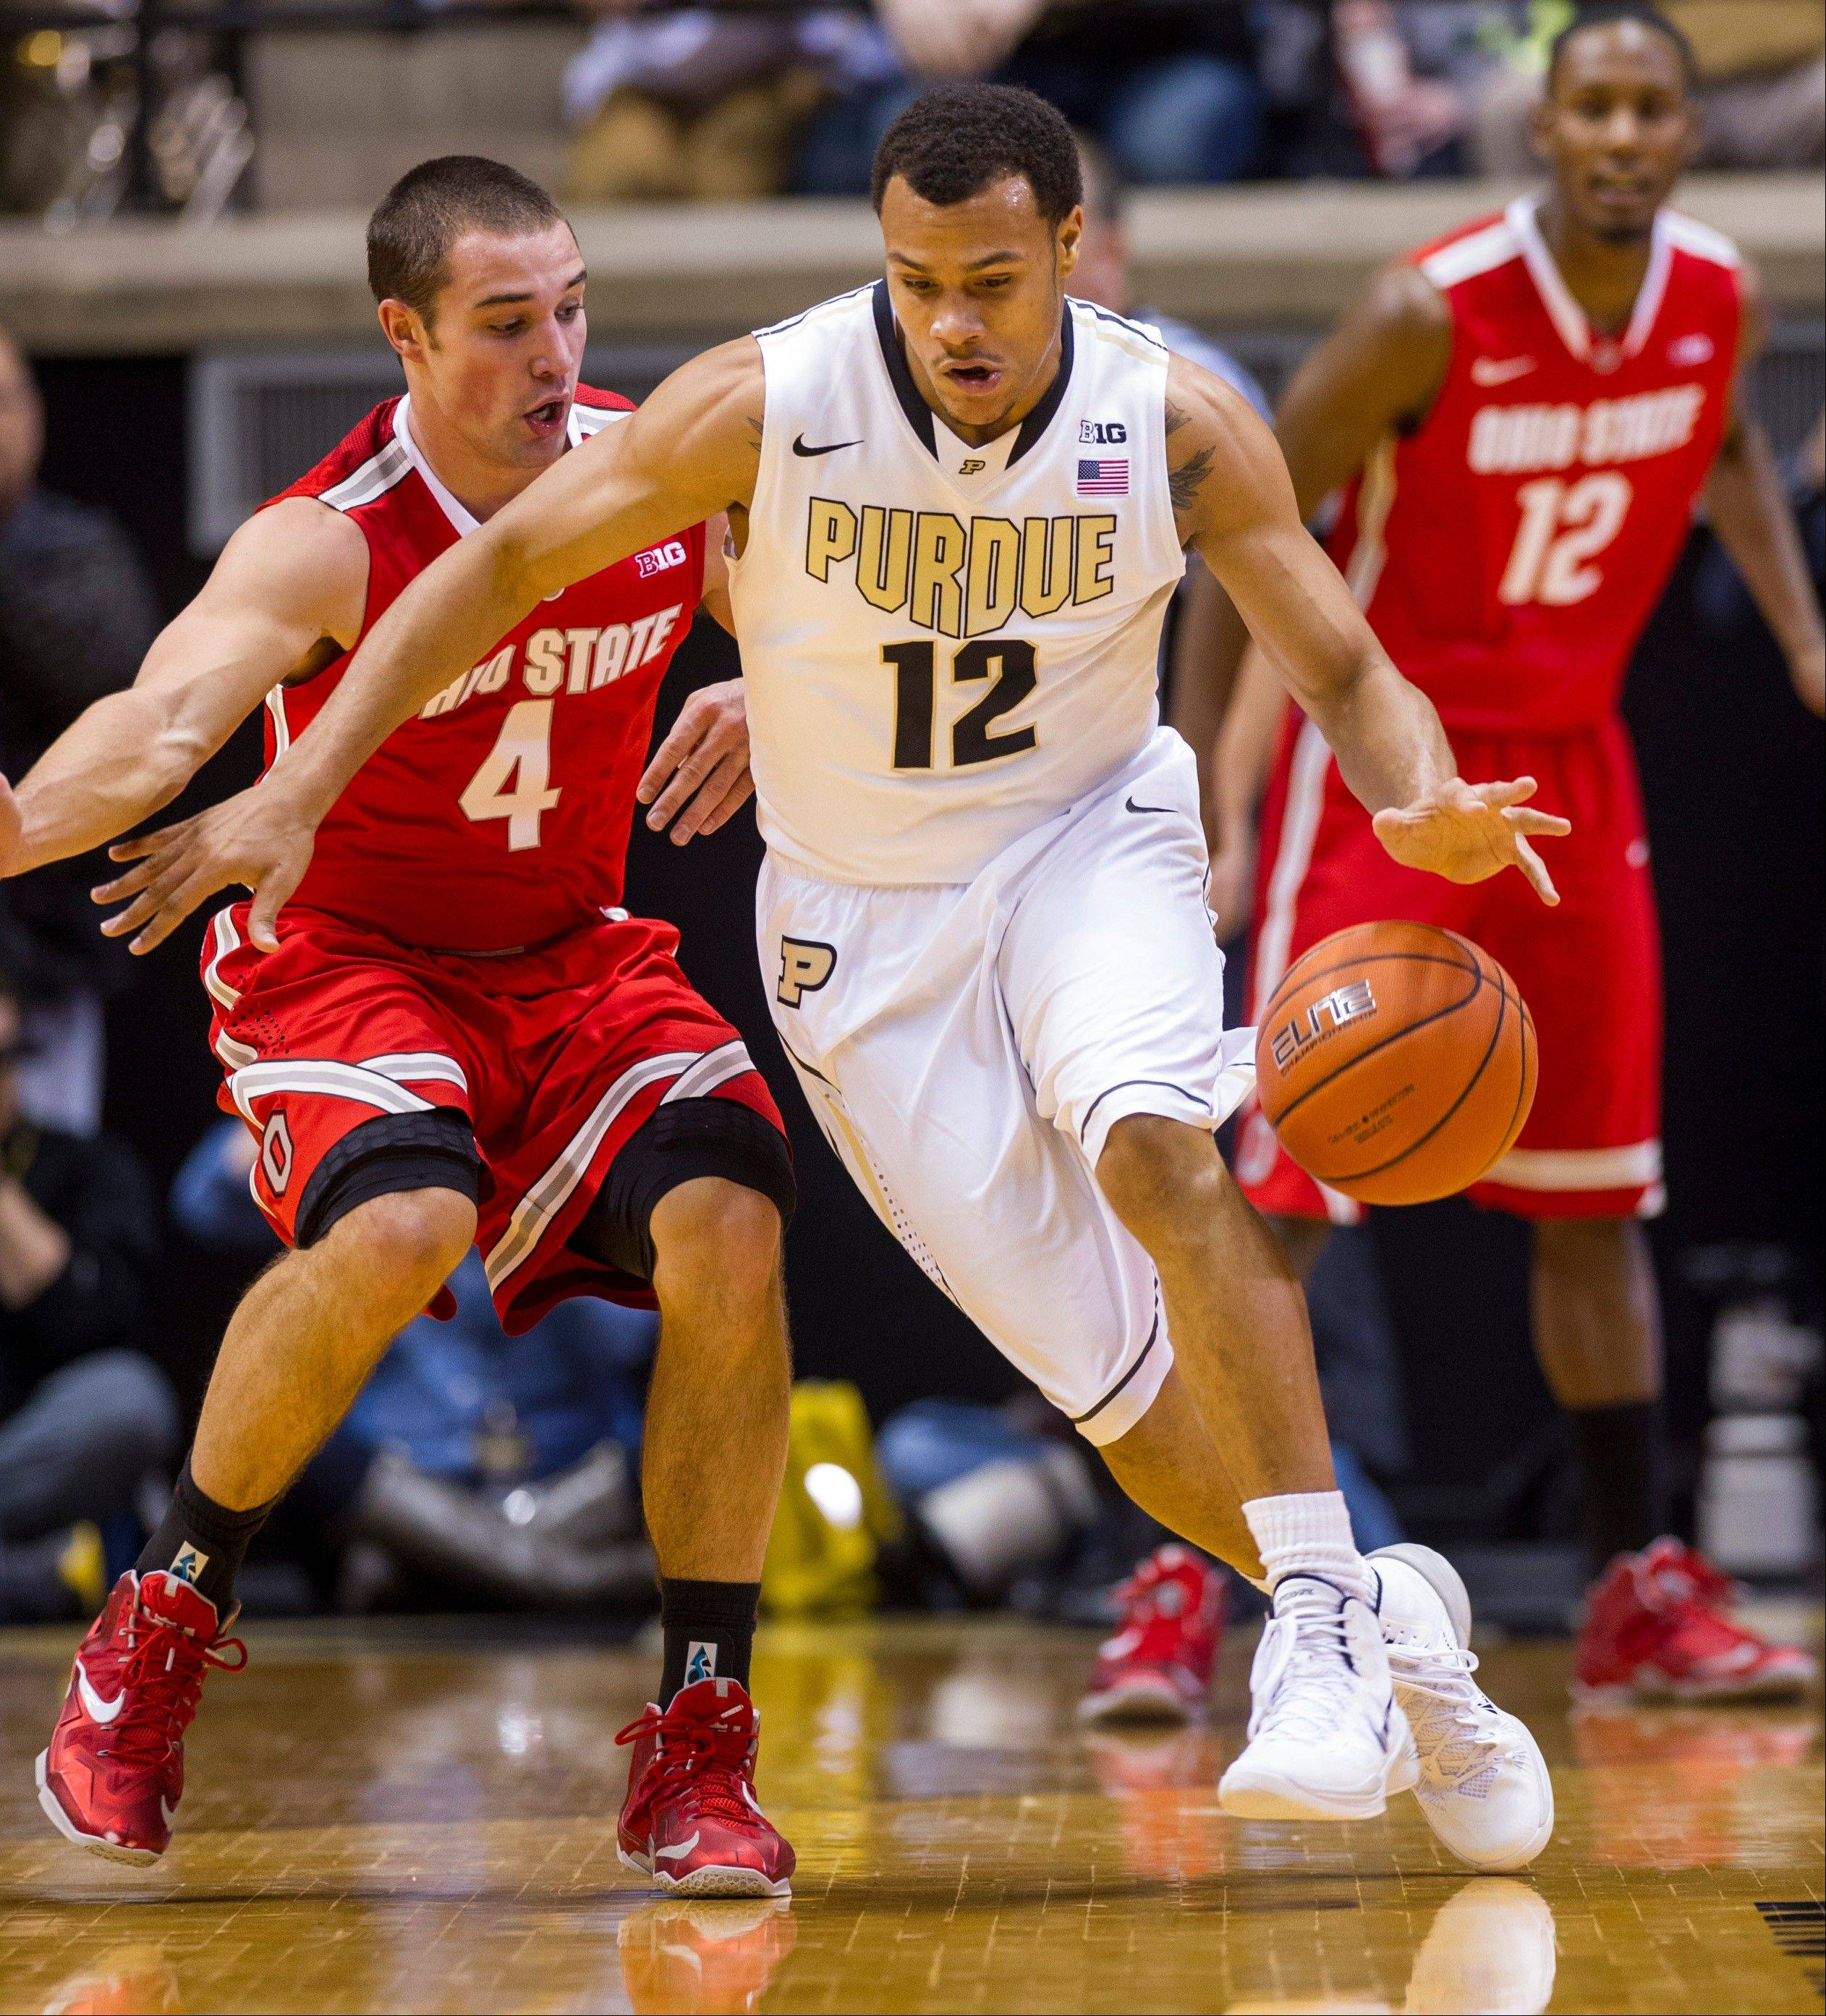 Purdue's Bryson Scott (12) works to maintain control of the ball as Ohio State's Aaron Craft (4) pressures him at mid-court in the first half of an NCAA college basketball game, Tuesday, Dec. 31, 2013, in West Lafayette, Ind. (AP Photo/Doug McSchooler)